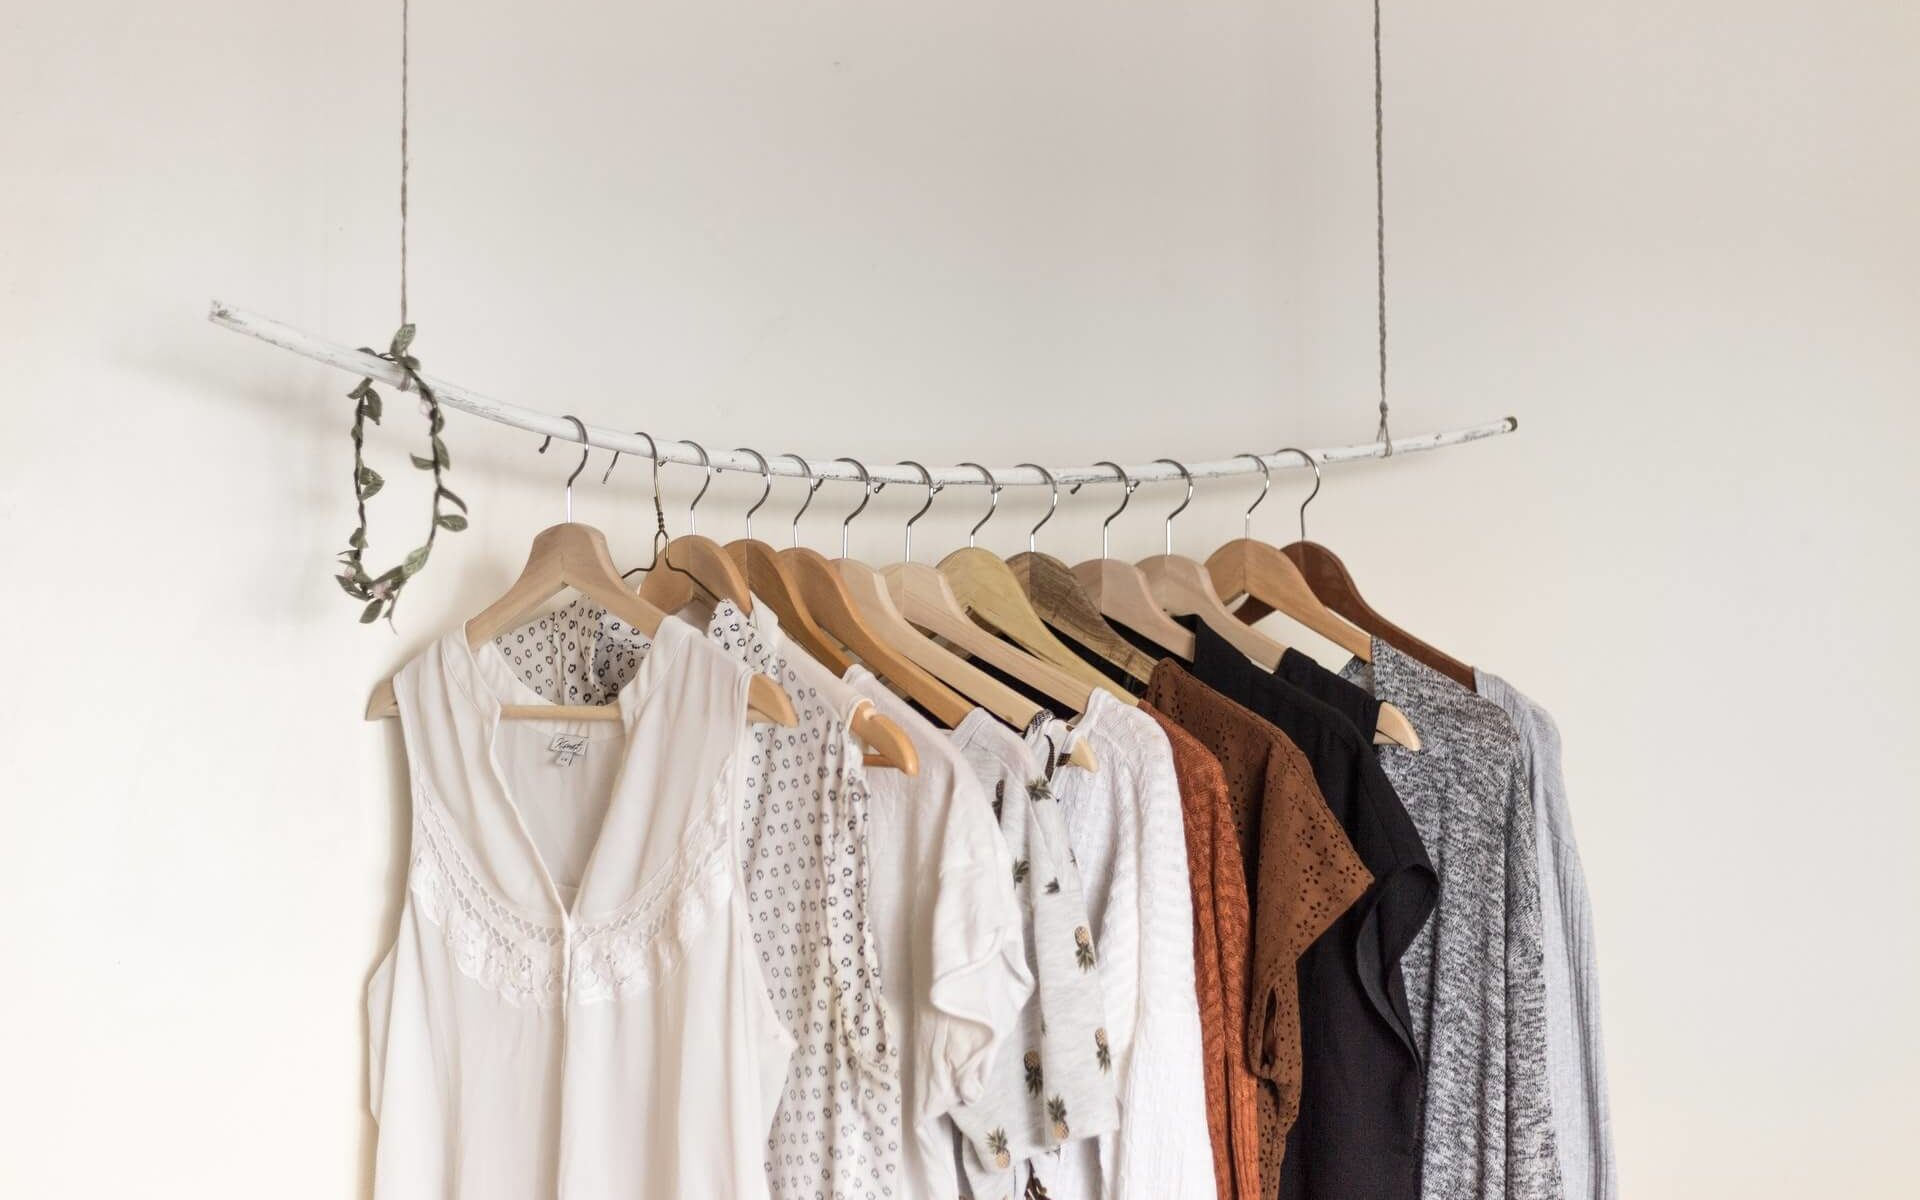 Green fashion: how to make your wardrobe more sustainable